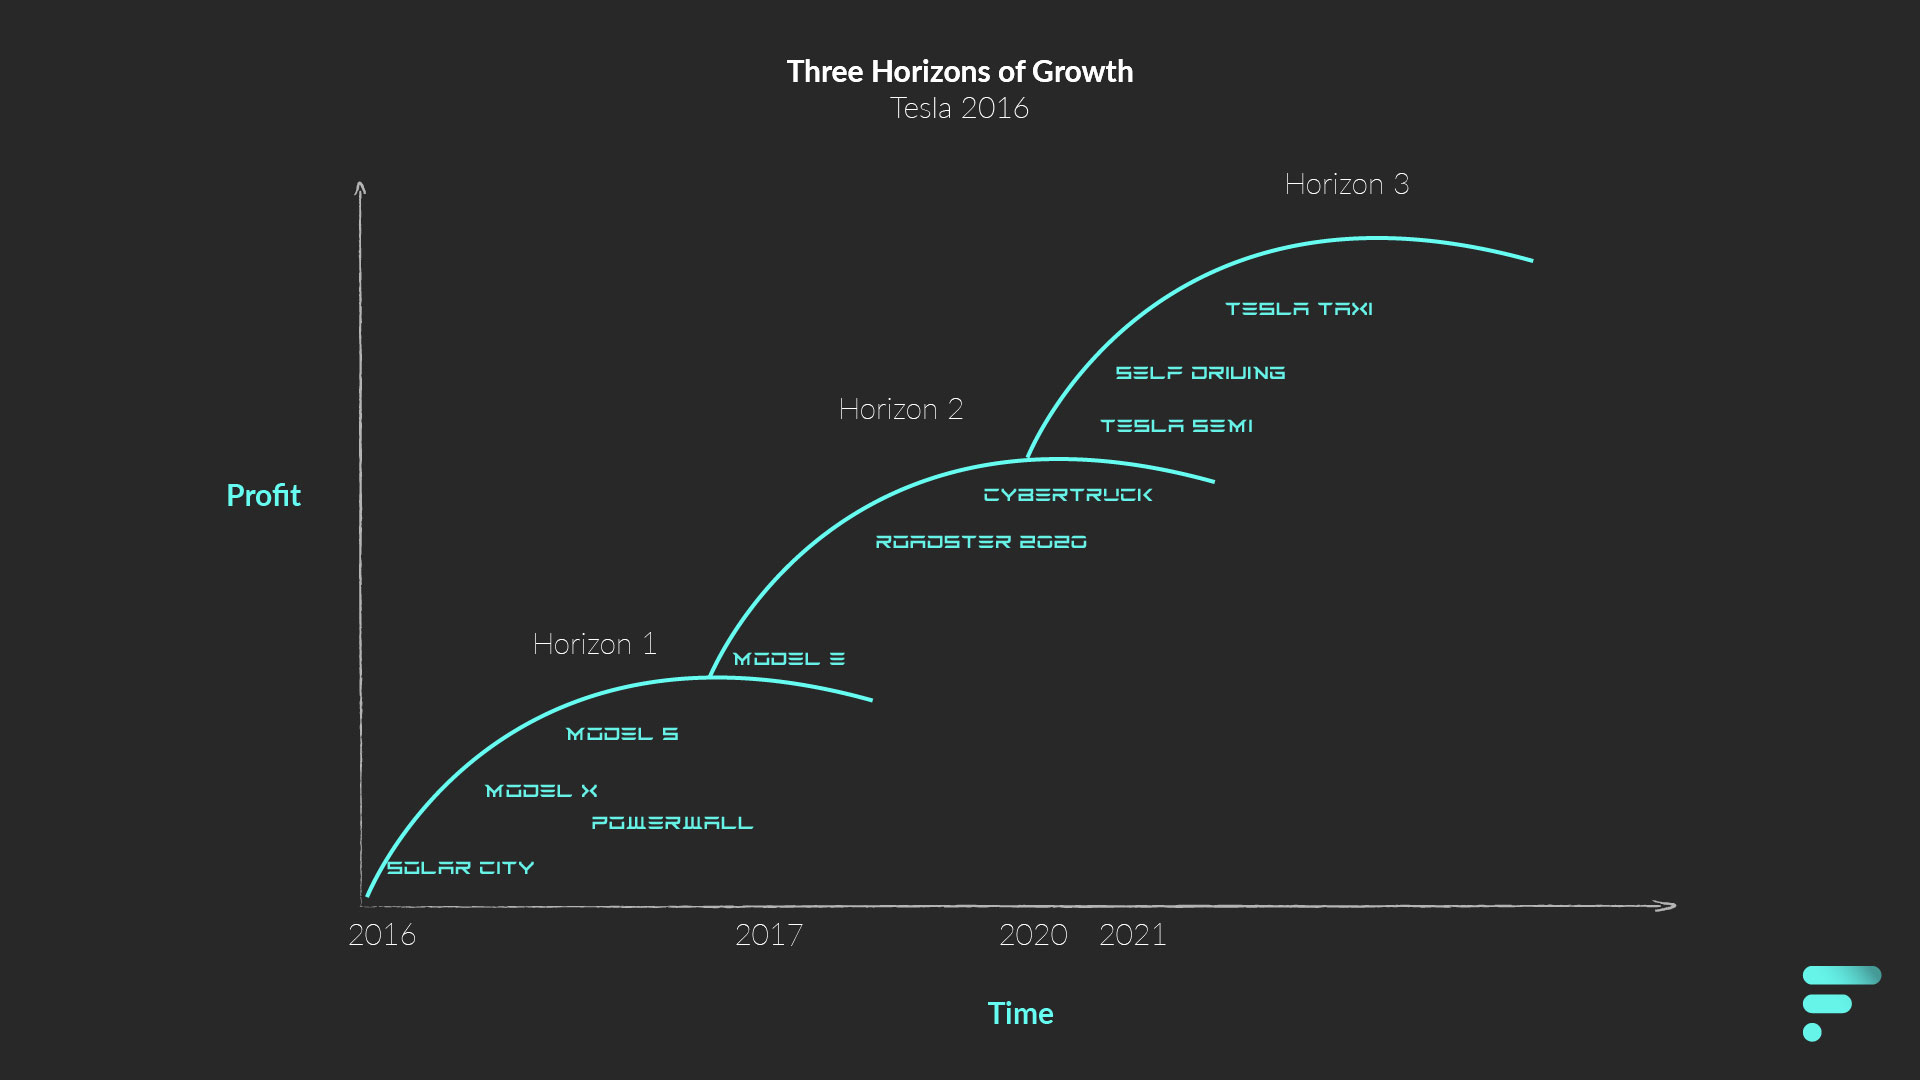 Three Horizons of Growth - Tesla in 2016